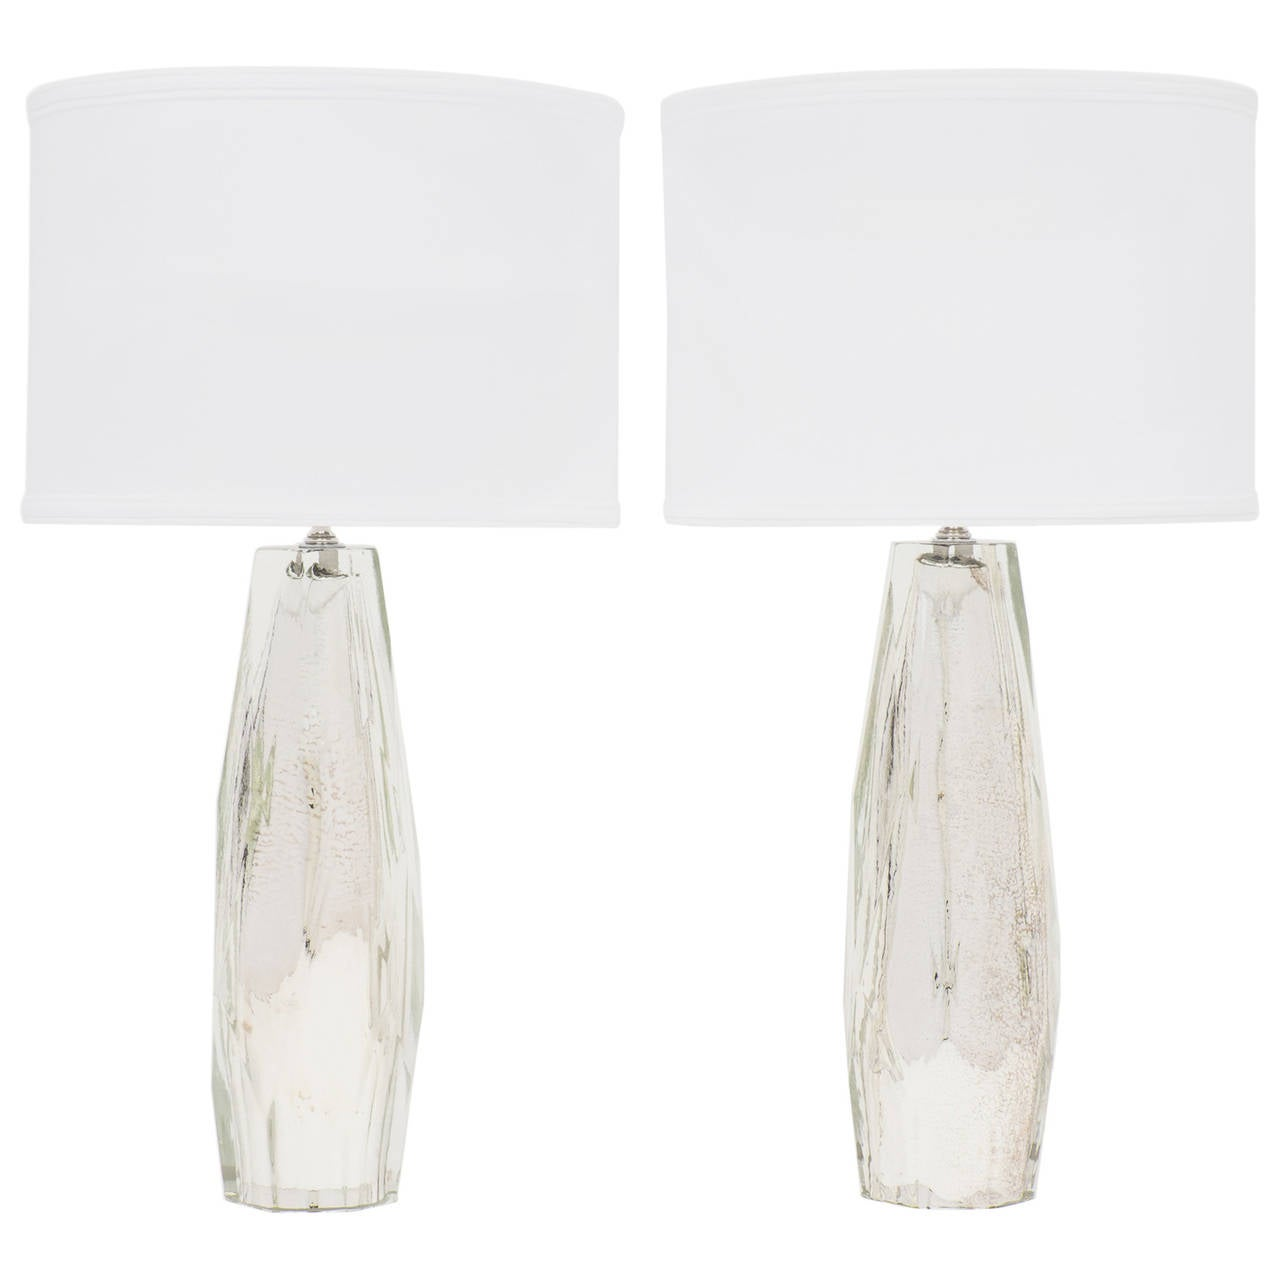 Pair of Murano Faceted Mercury Glass Lamps